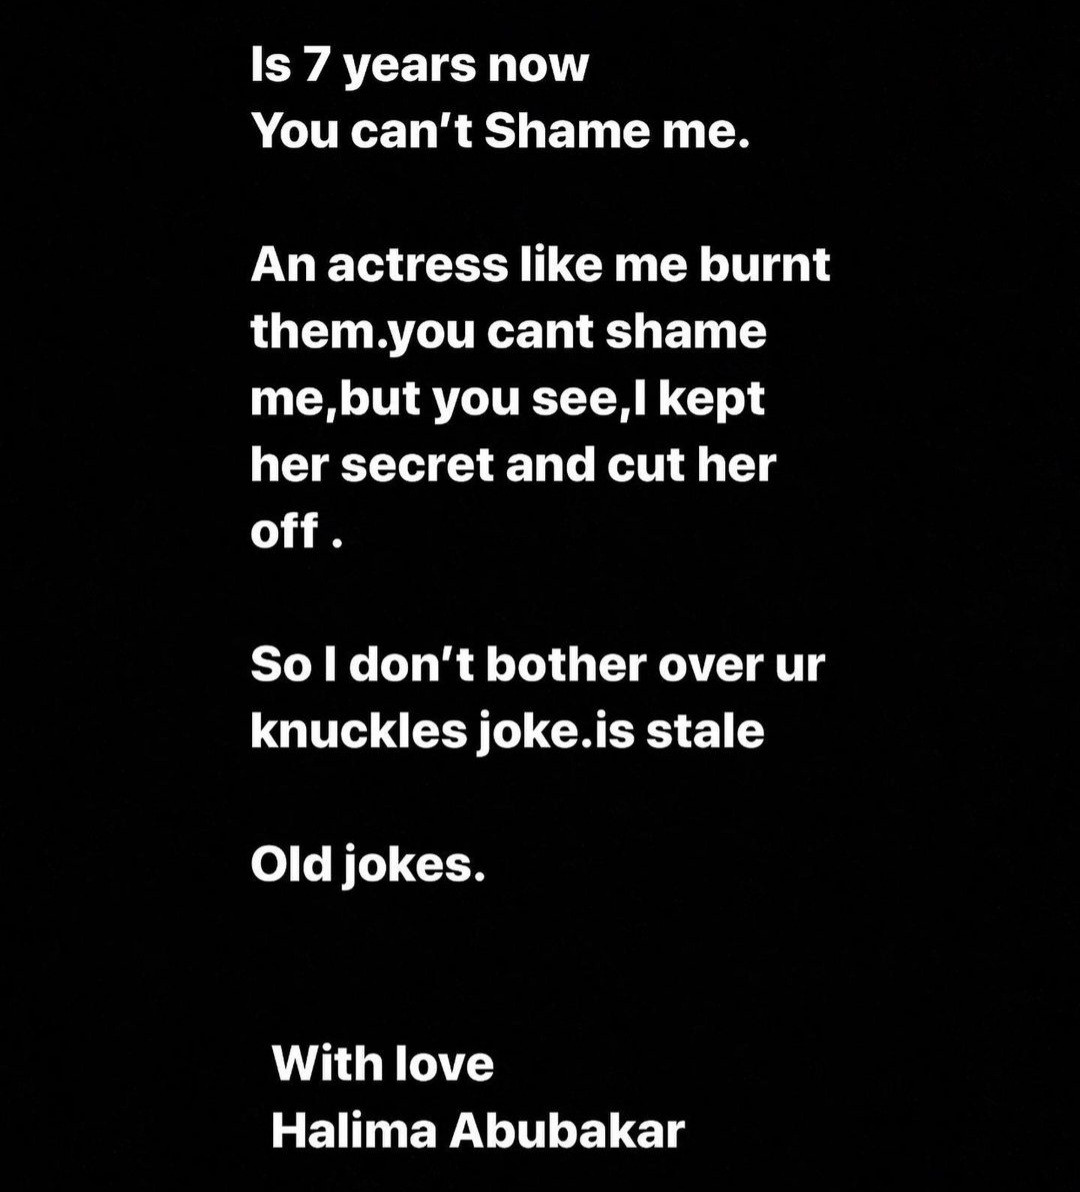 Halima Abubakar hits back at those making fun of her knuckles then threatens to expose her